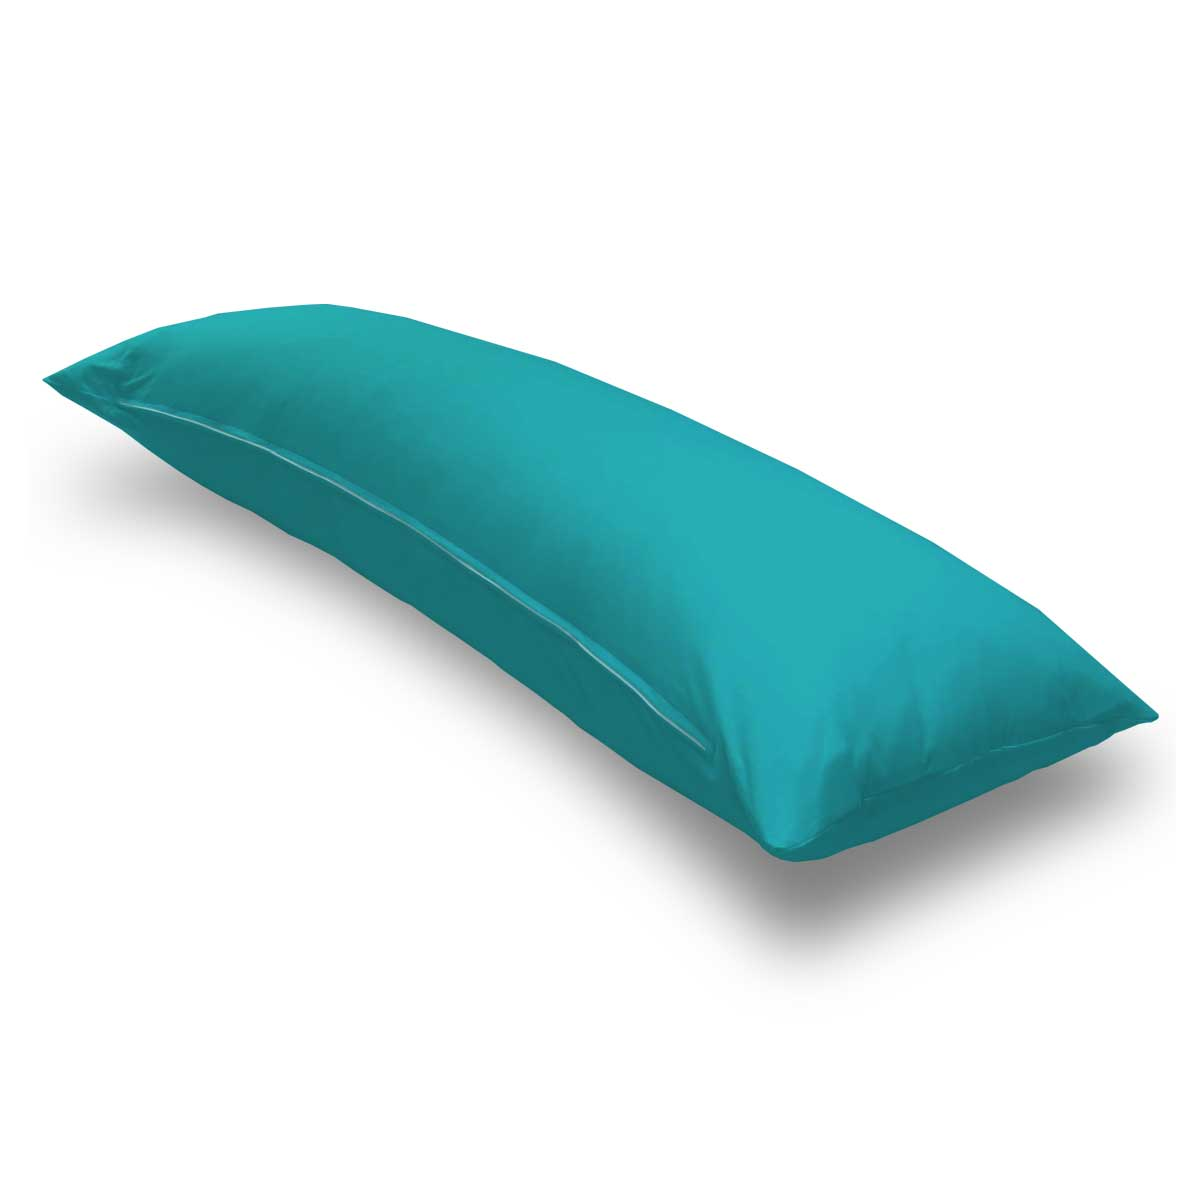 Solid Teal Jersey Knit Body Pillow Case